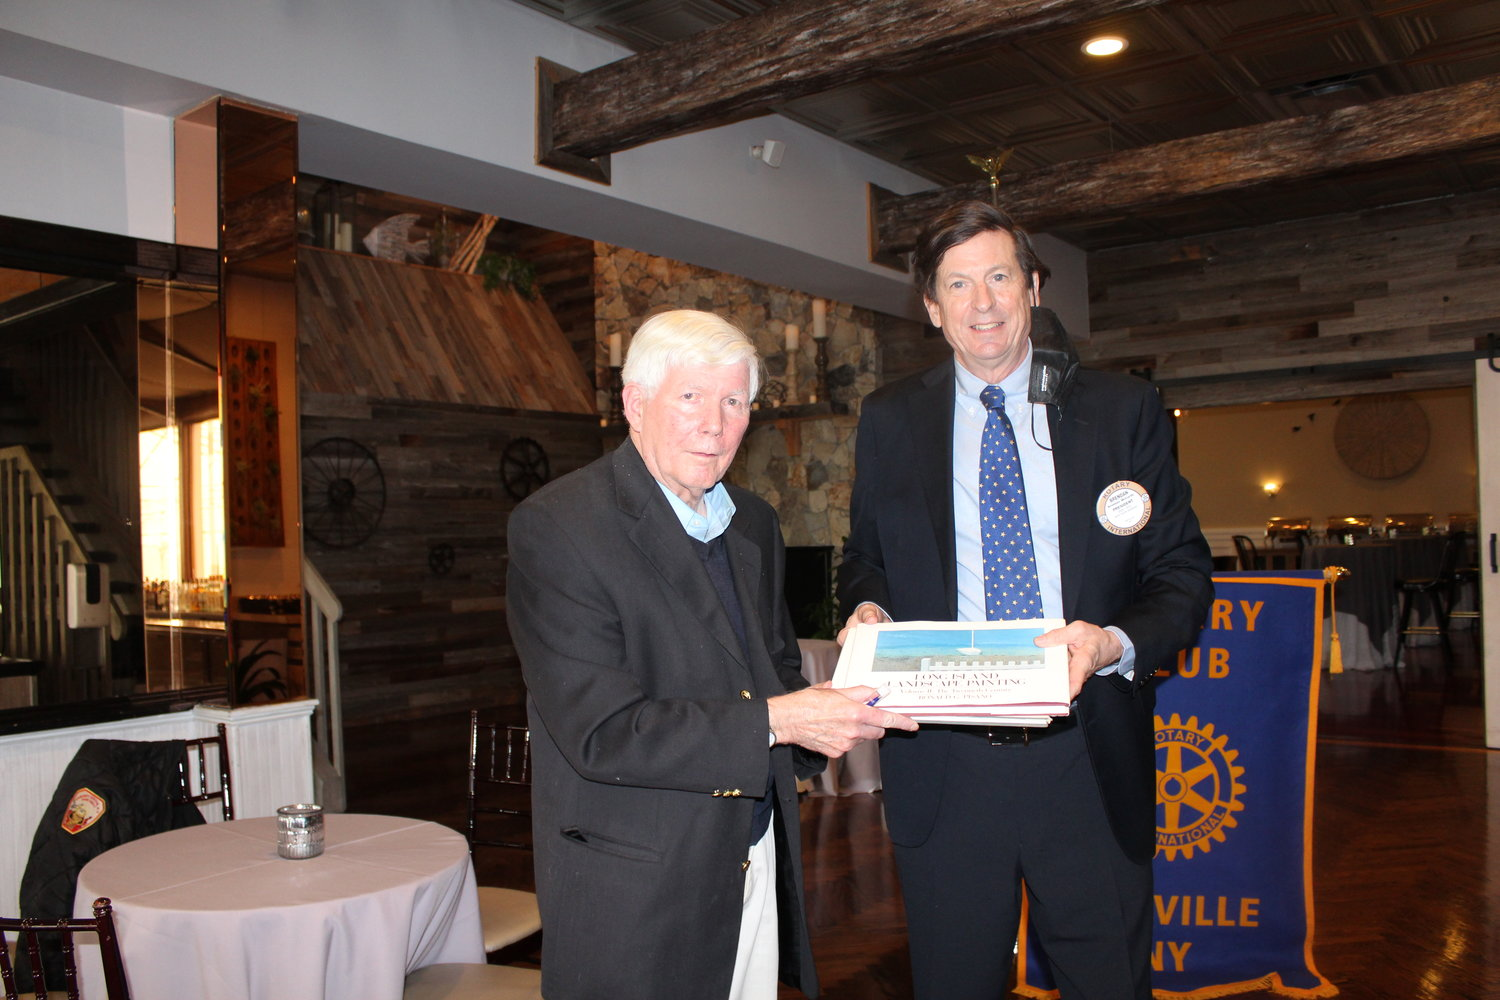 Former Islip deputy supervisor and councilman Chris Bodkin was honored at a recent Rotary Club of Sayville meeting for the programs he initiated while in office. Bodkin (left) is with